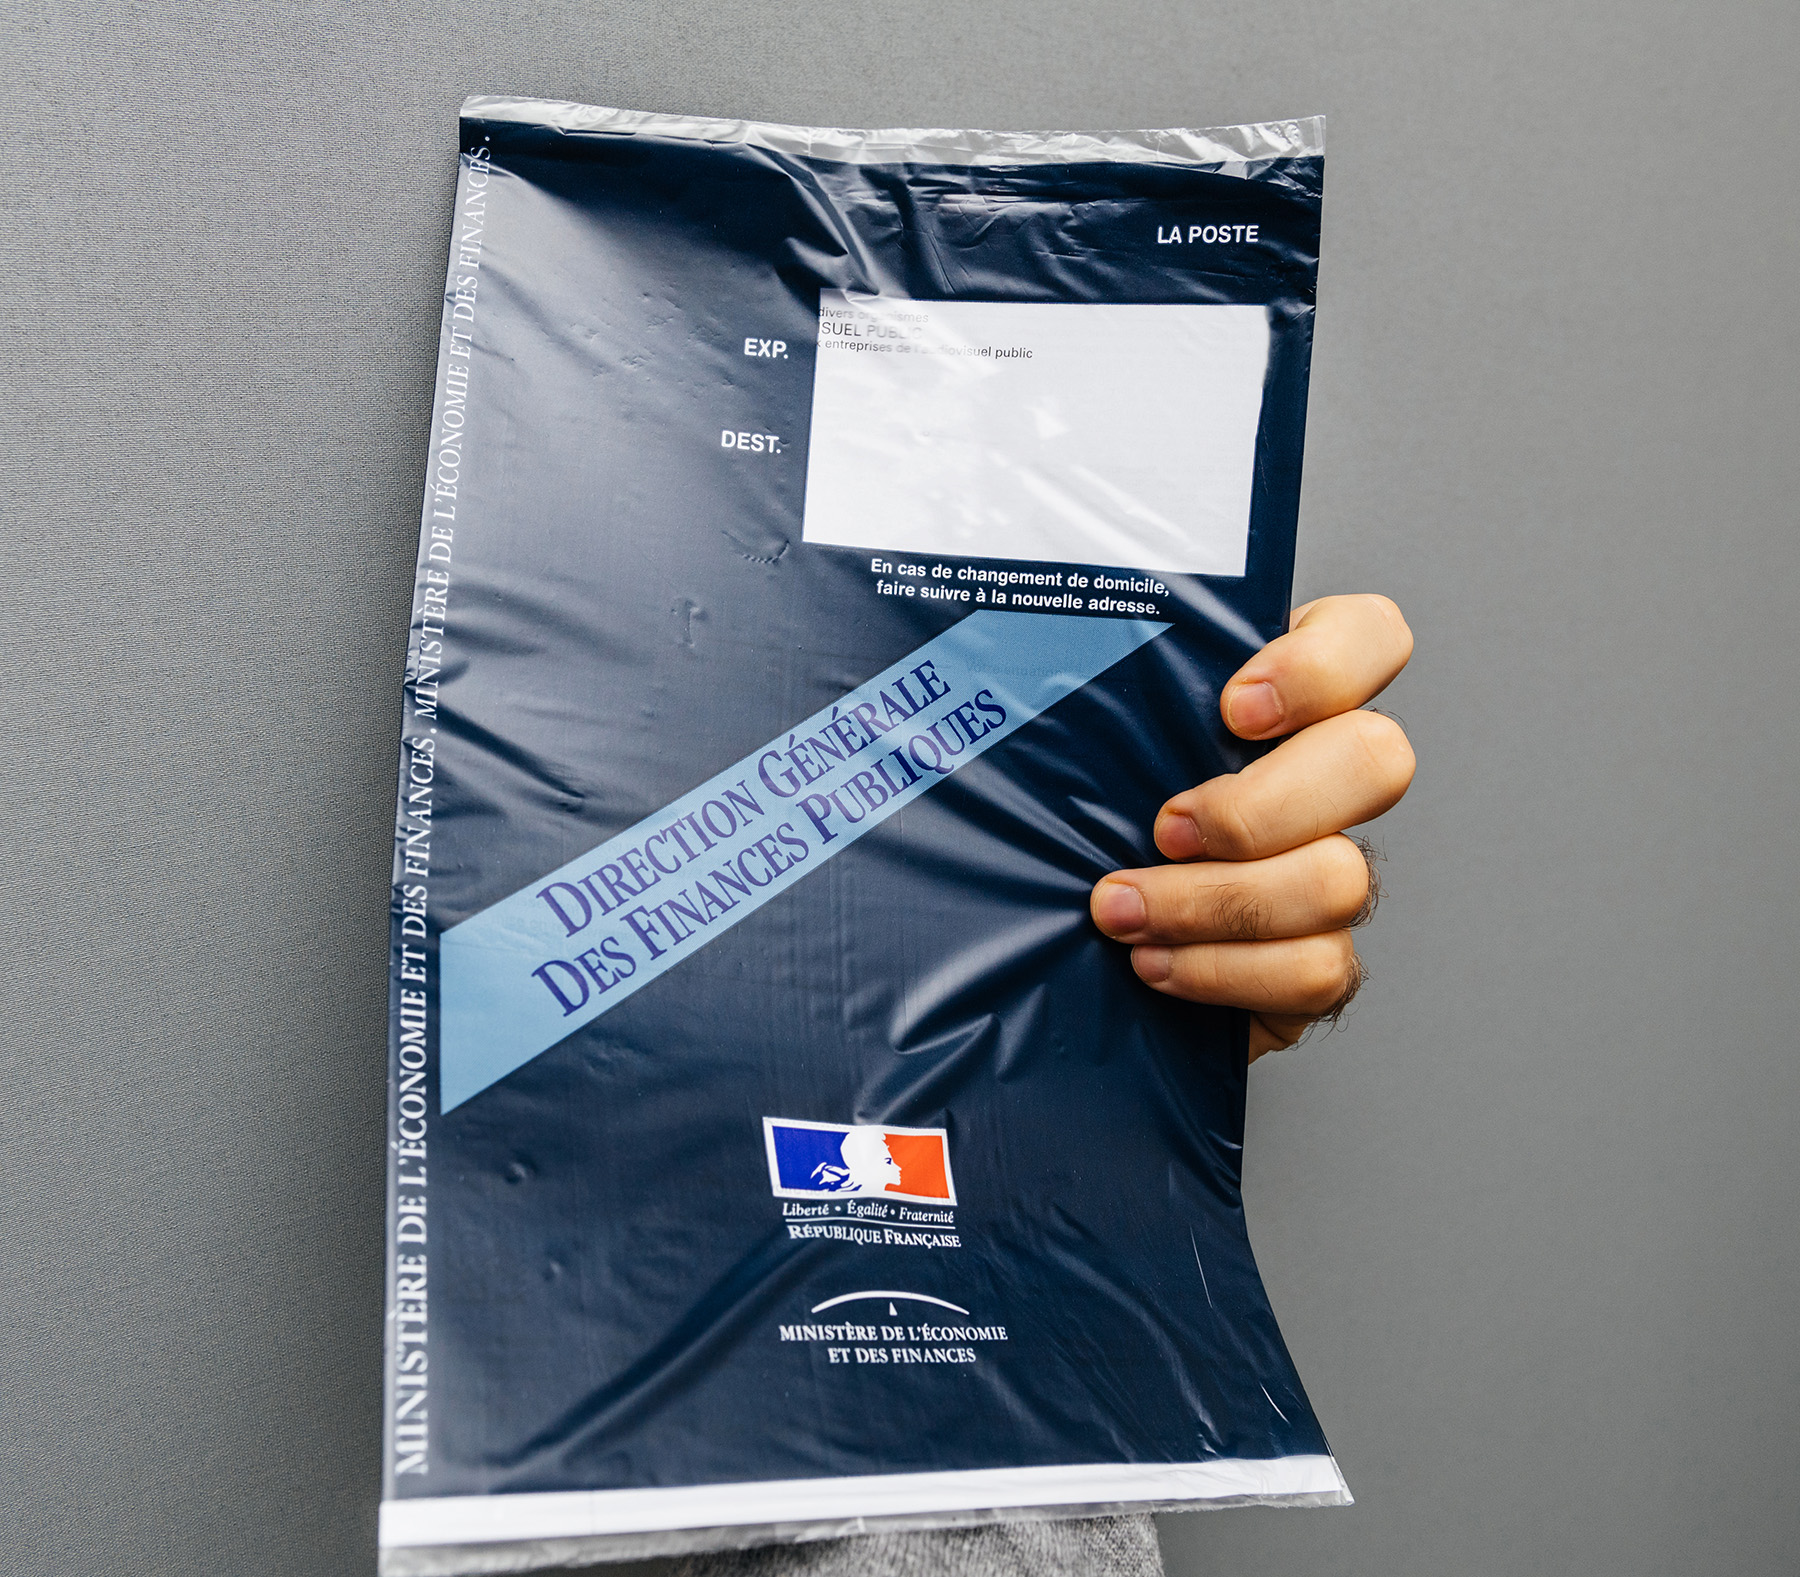 A taxe d'habitation packet in France